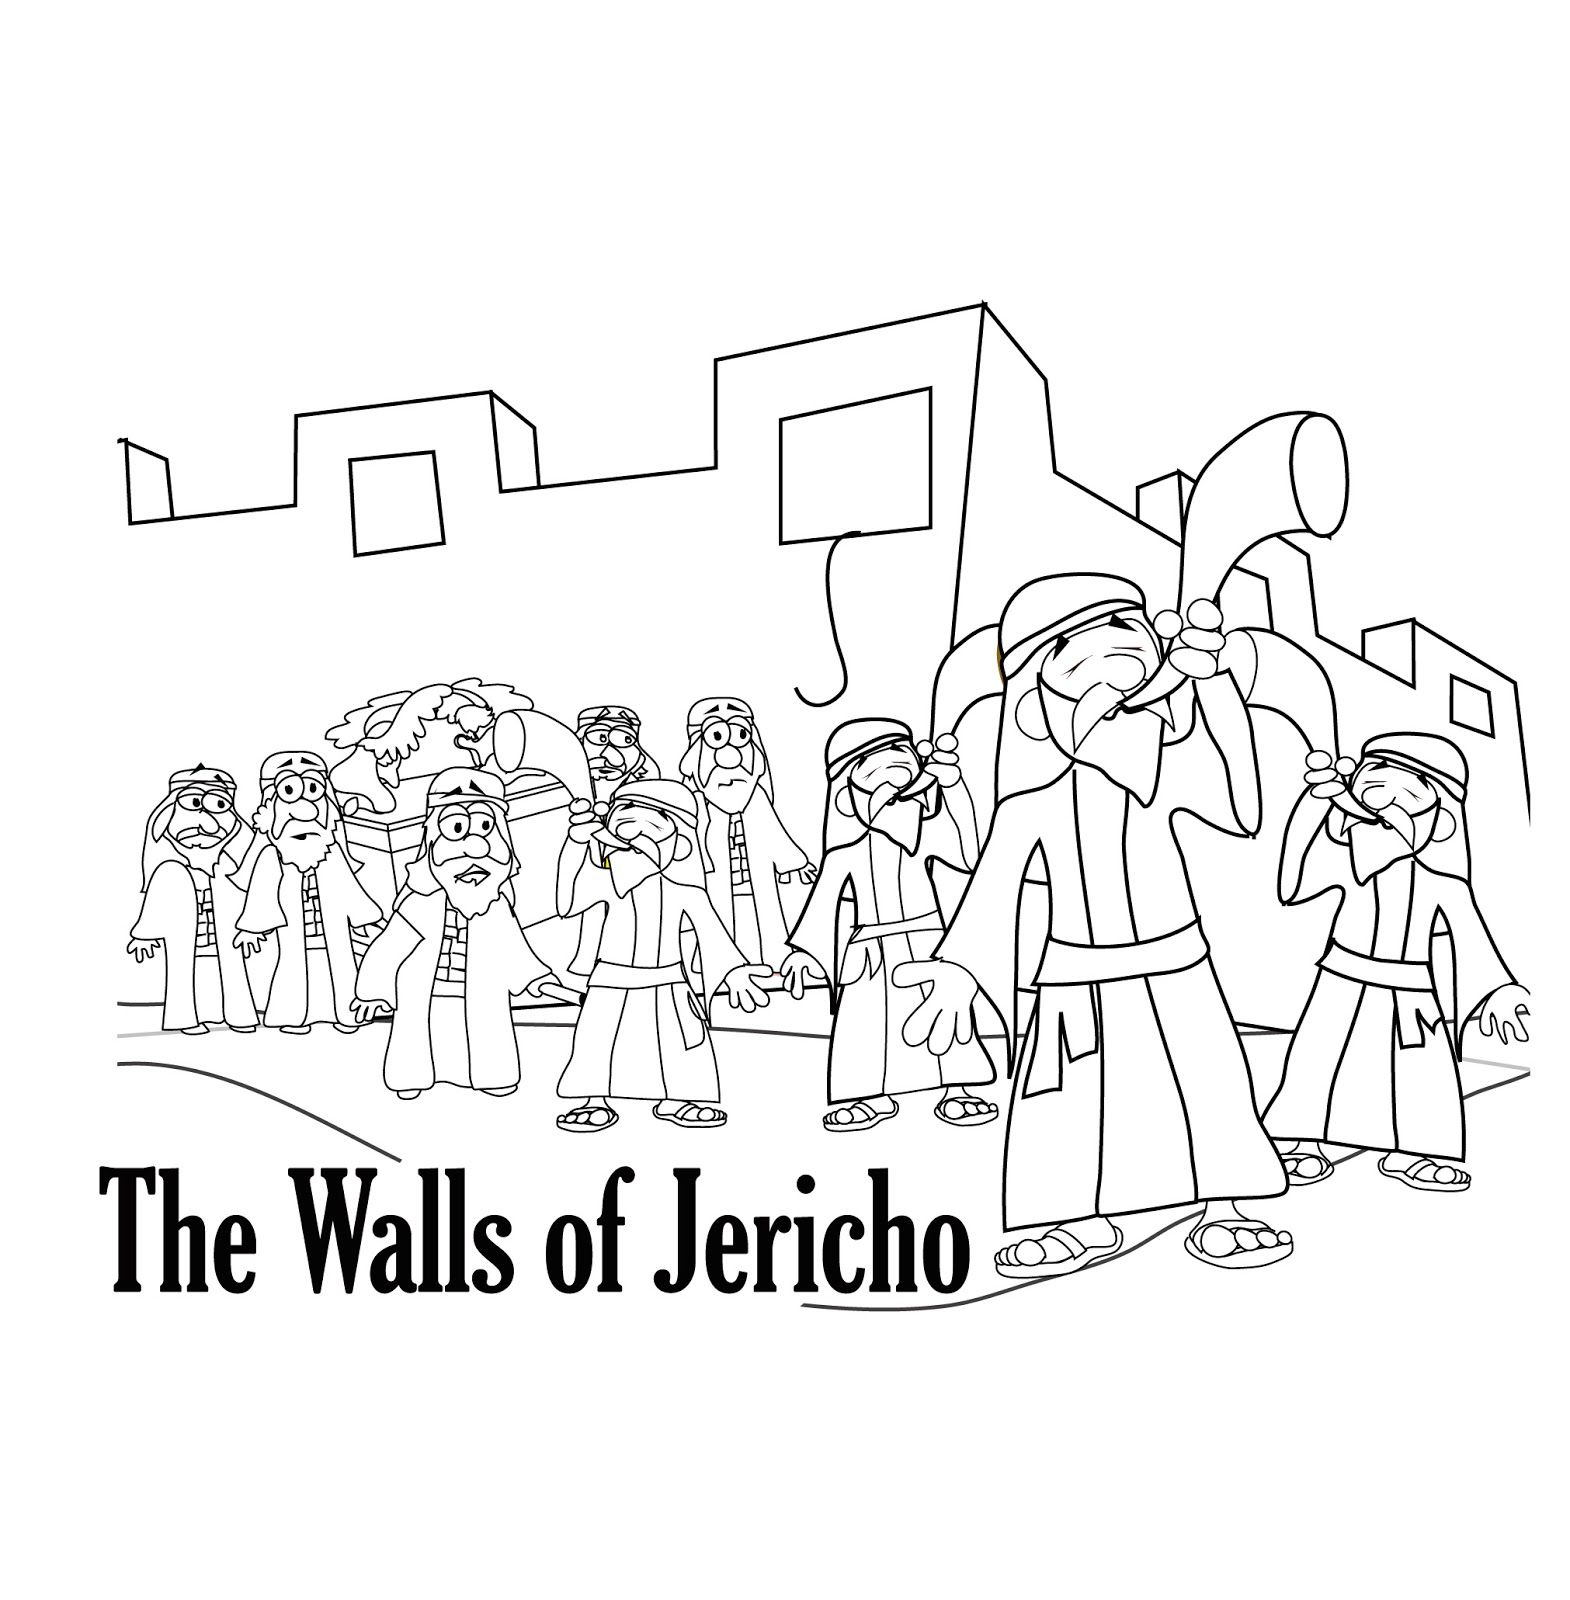 walls of jericho coloring sheet march around the wall of jericho toddler bible lessons of coloring jericho sheet walls